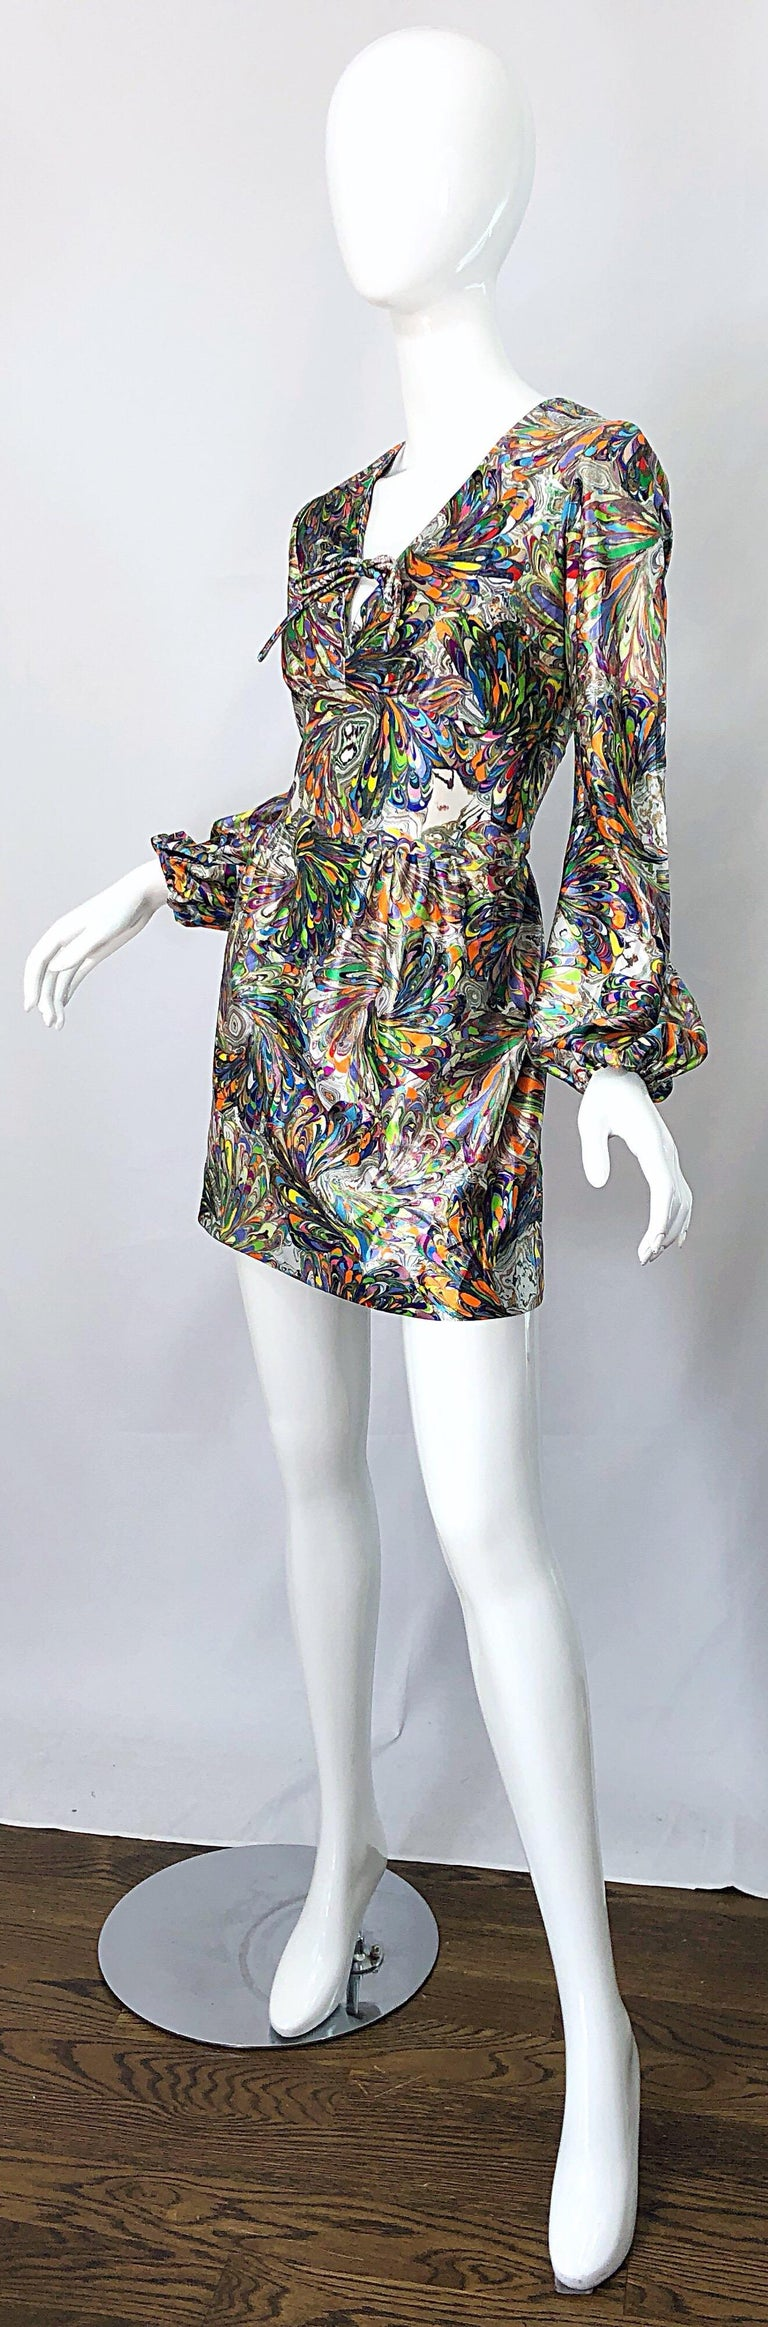 1970s Mosaic Swirl Vibrant Colored Bishop Sleeve Vintage 70s Tunic Dress For Sale 3